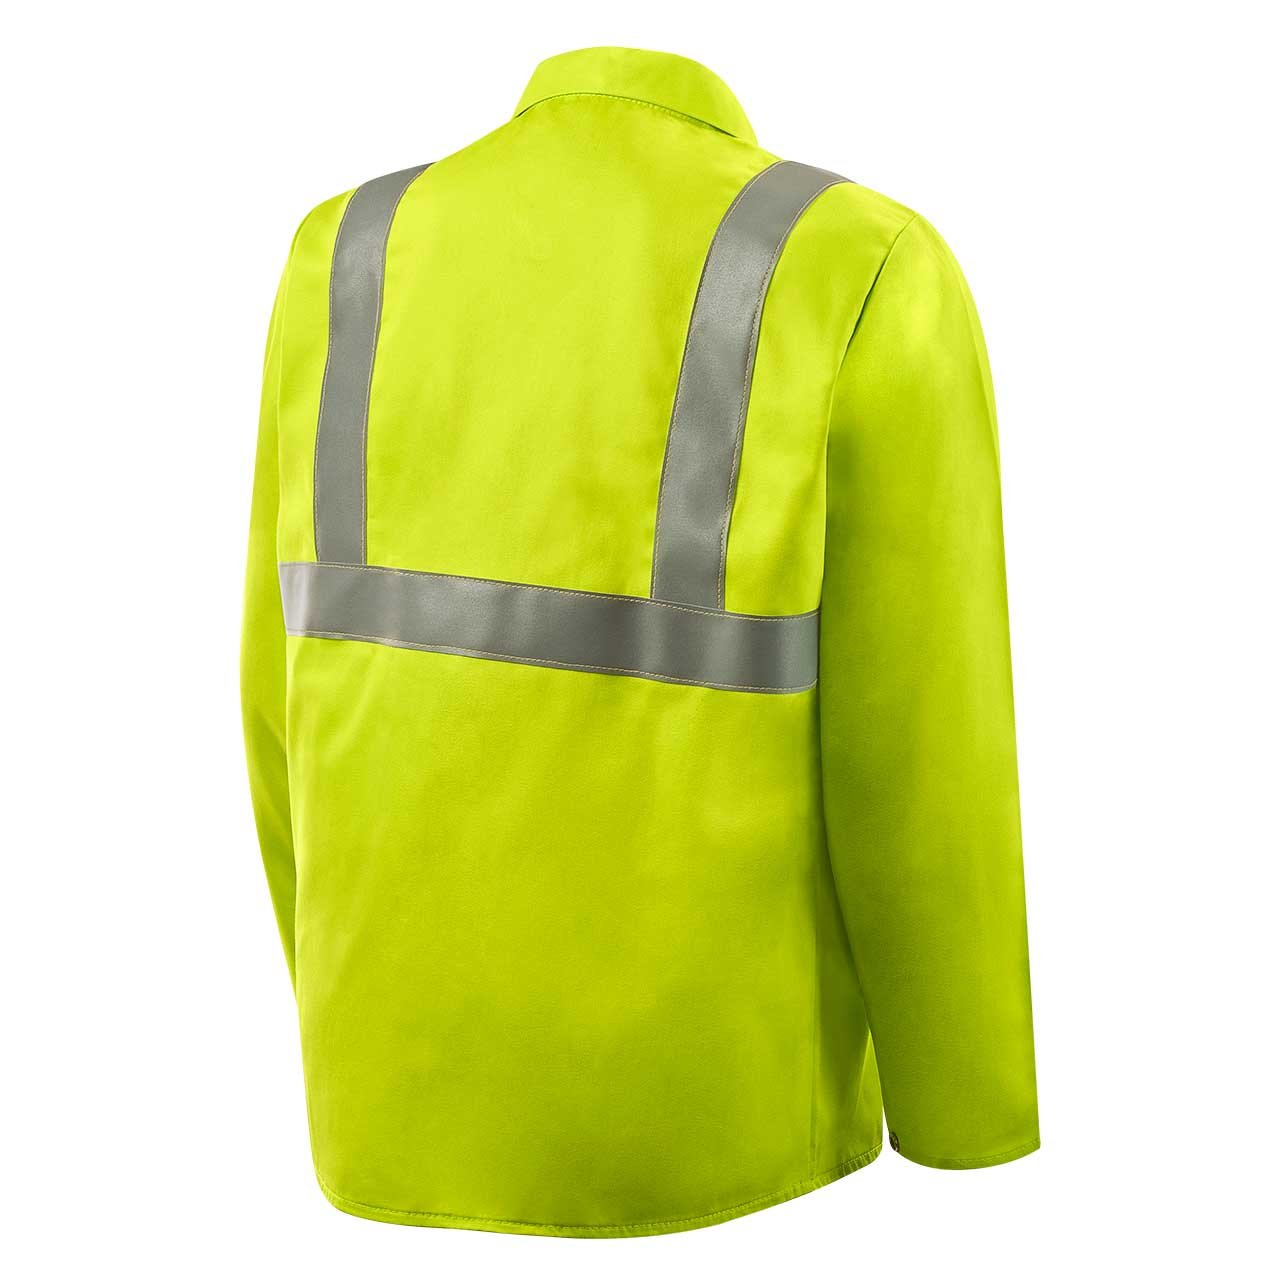 Steiner 1070RS-X 30-Inch Jacket, Weld Lite 9-Ounce Fire Resistant Cotton Lime Green with Silver Reflective Stripes, X-Large by Steiner (Image #2)